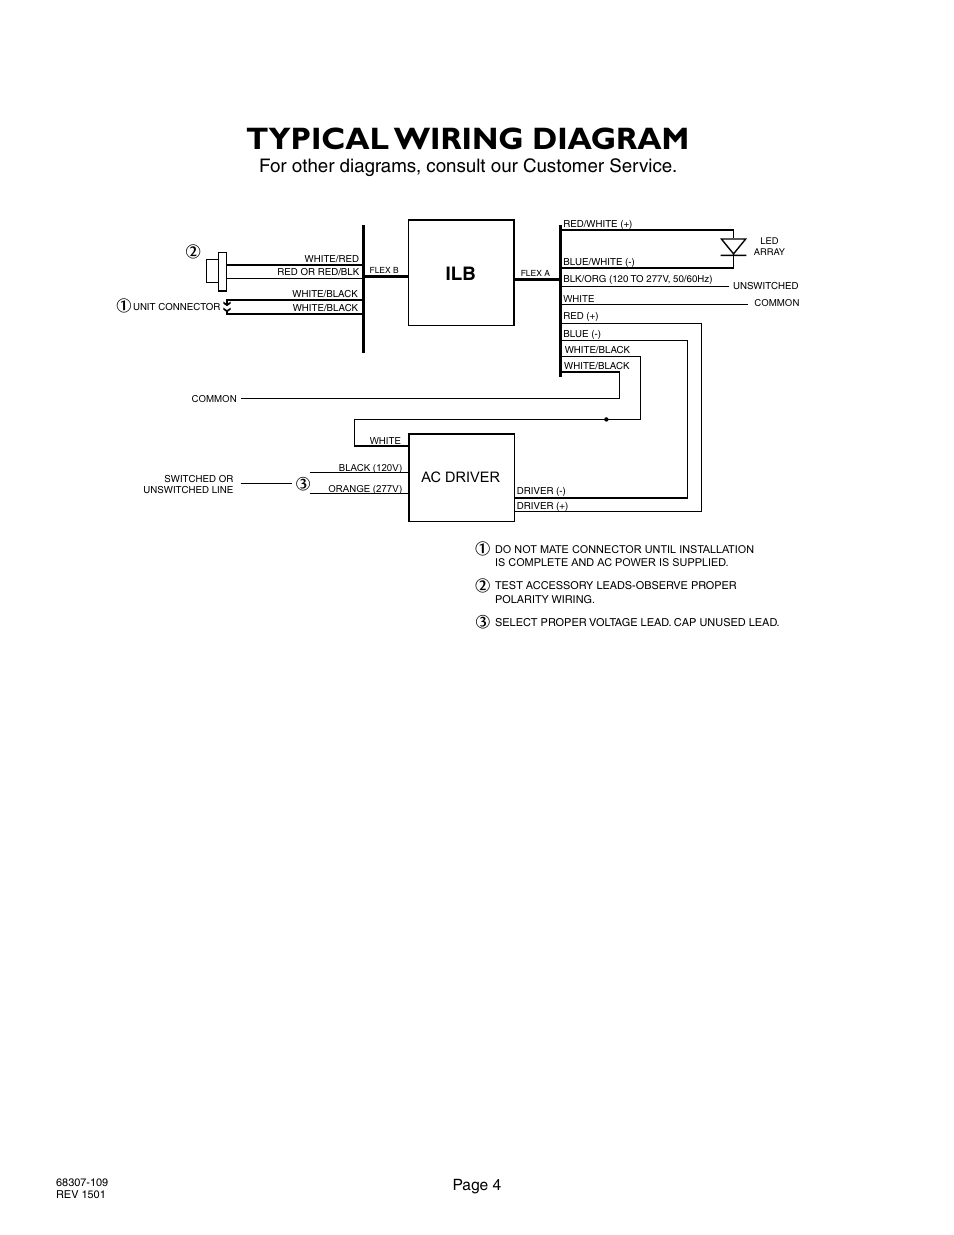 iota ilb cp12 page4 typical wiring diagram, for other diagrams, consult our customer 3-Way Switch Wiring Diagram for Switch To at alyssarenee.co